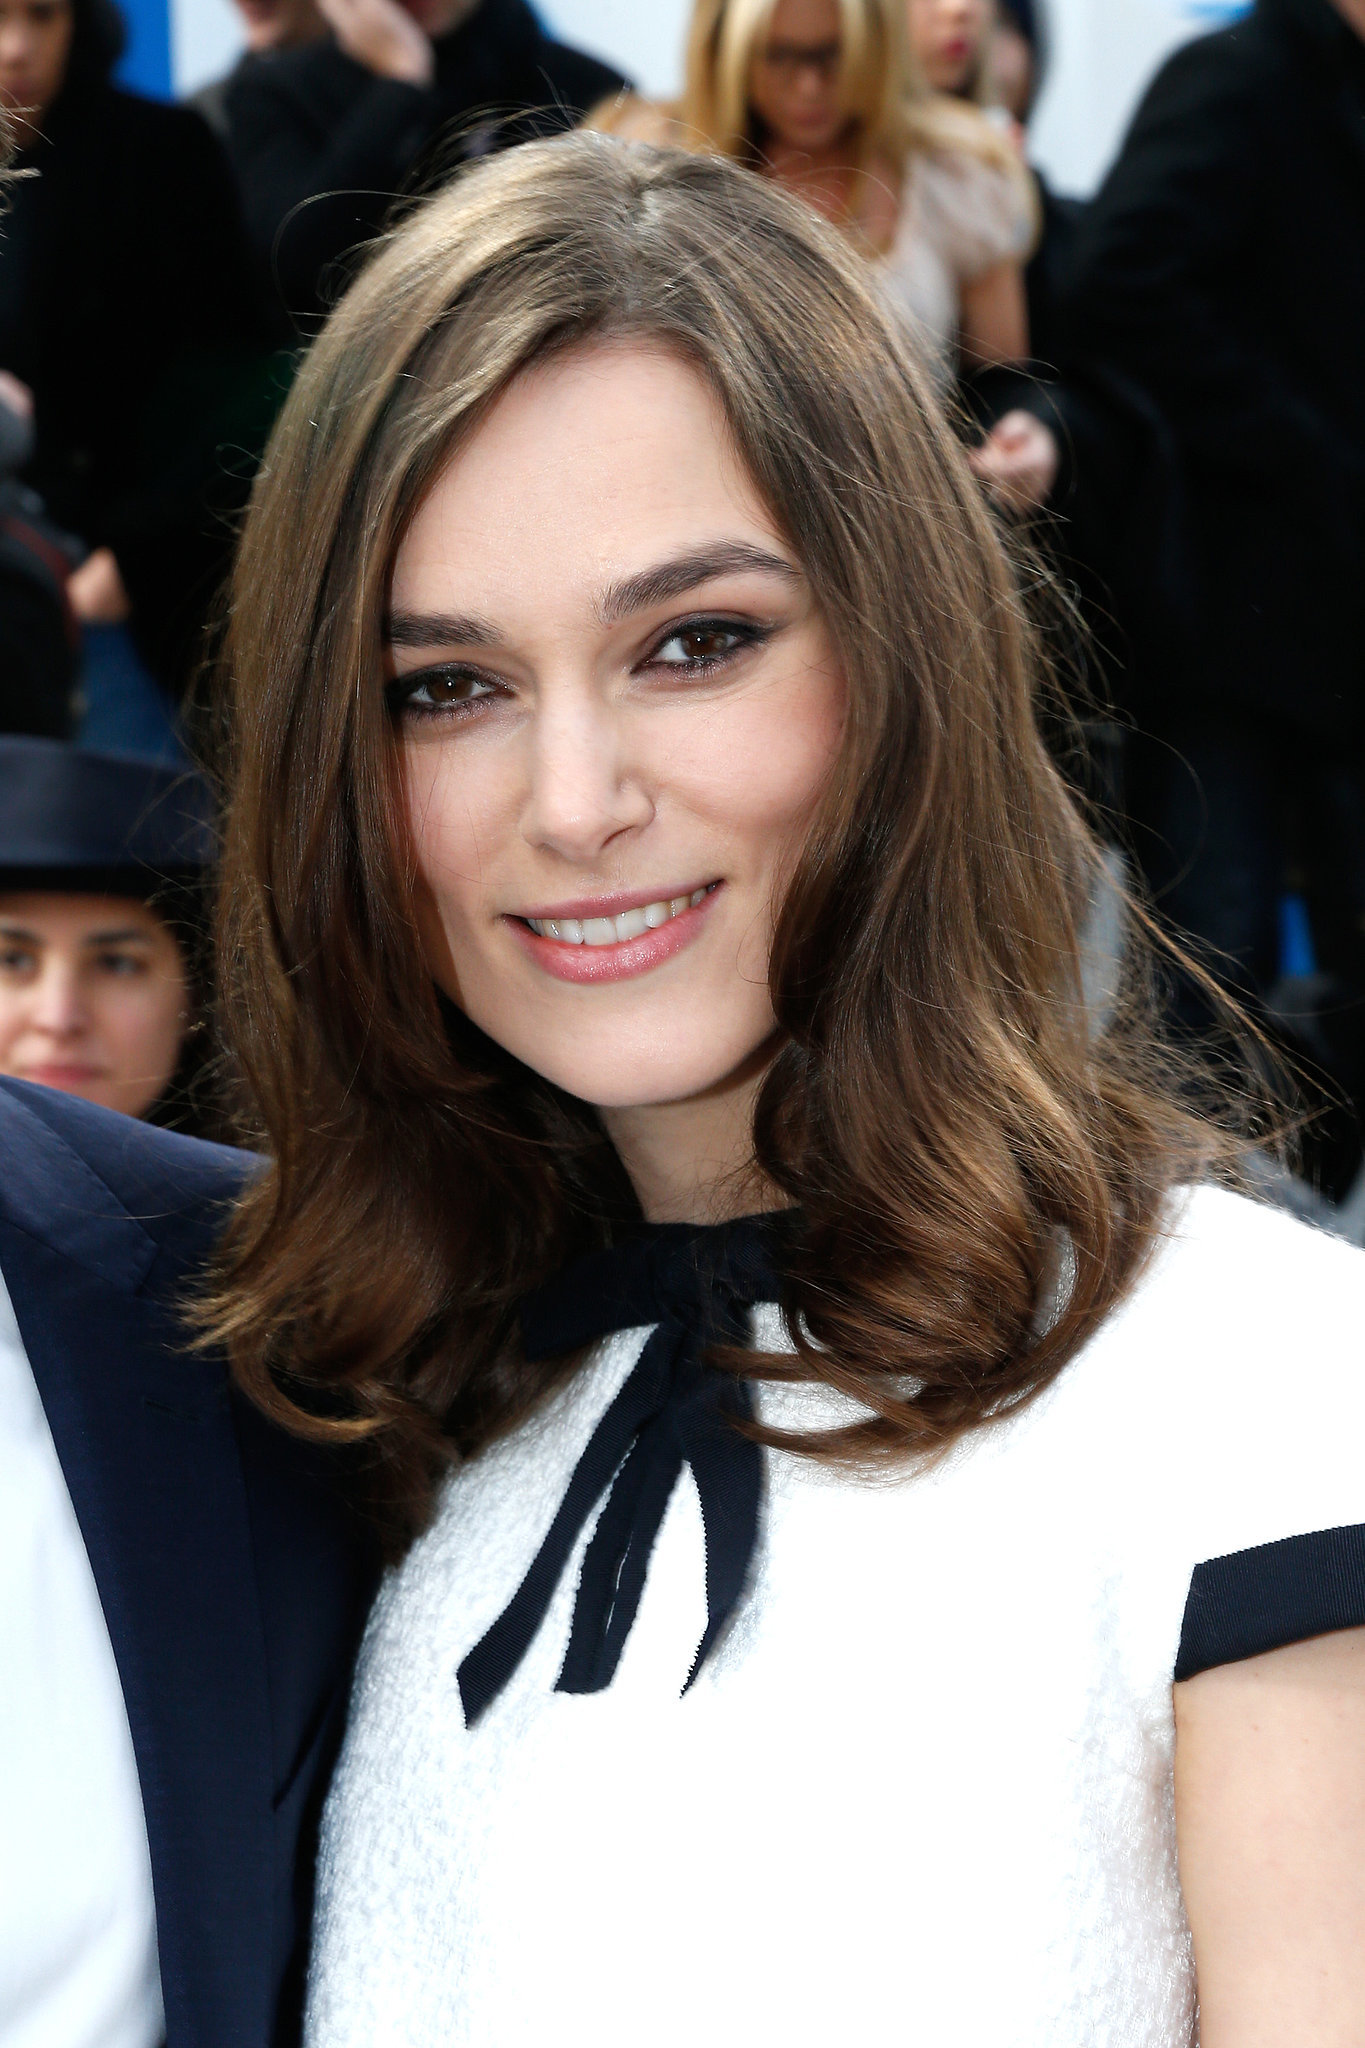 keira knightley at chanel lupita won paris fashion week too plus more front row beauty. Black Bedroom Furniture Sets. Home Design Ideas